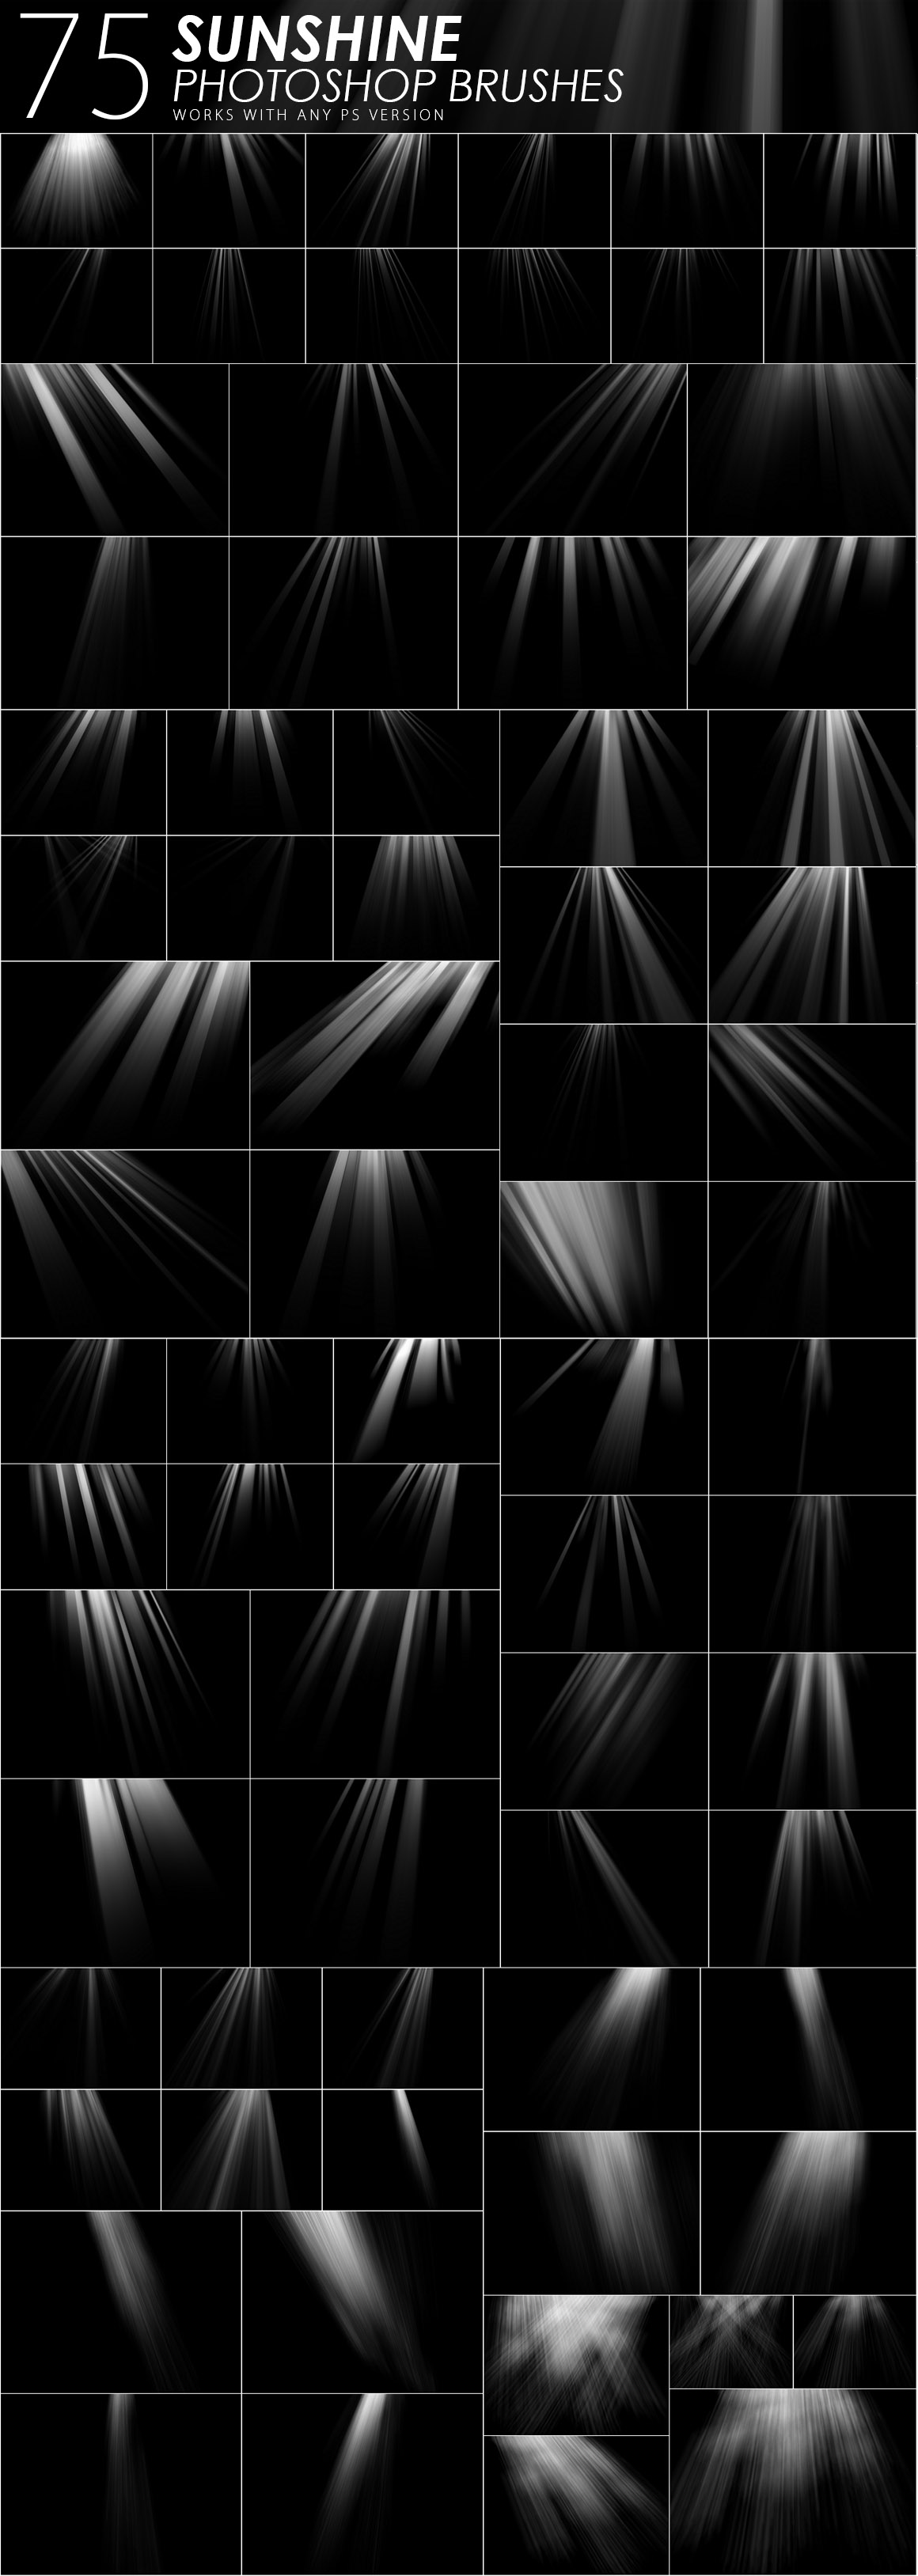 1505 Visual Effect Photoshop Brushes example image 17